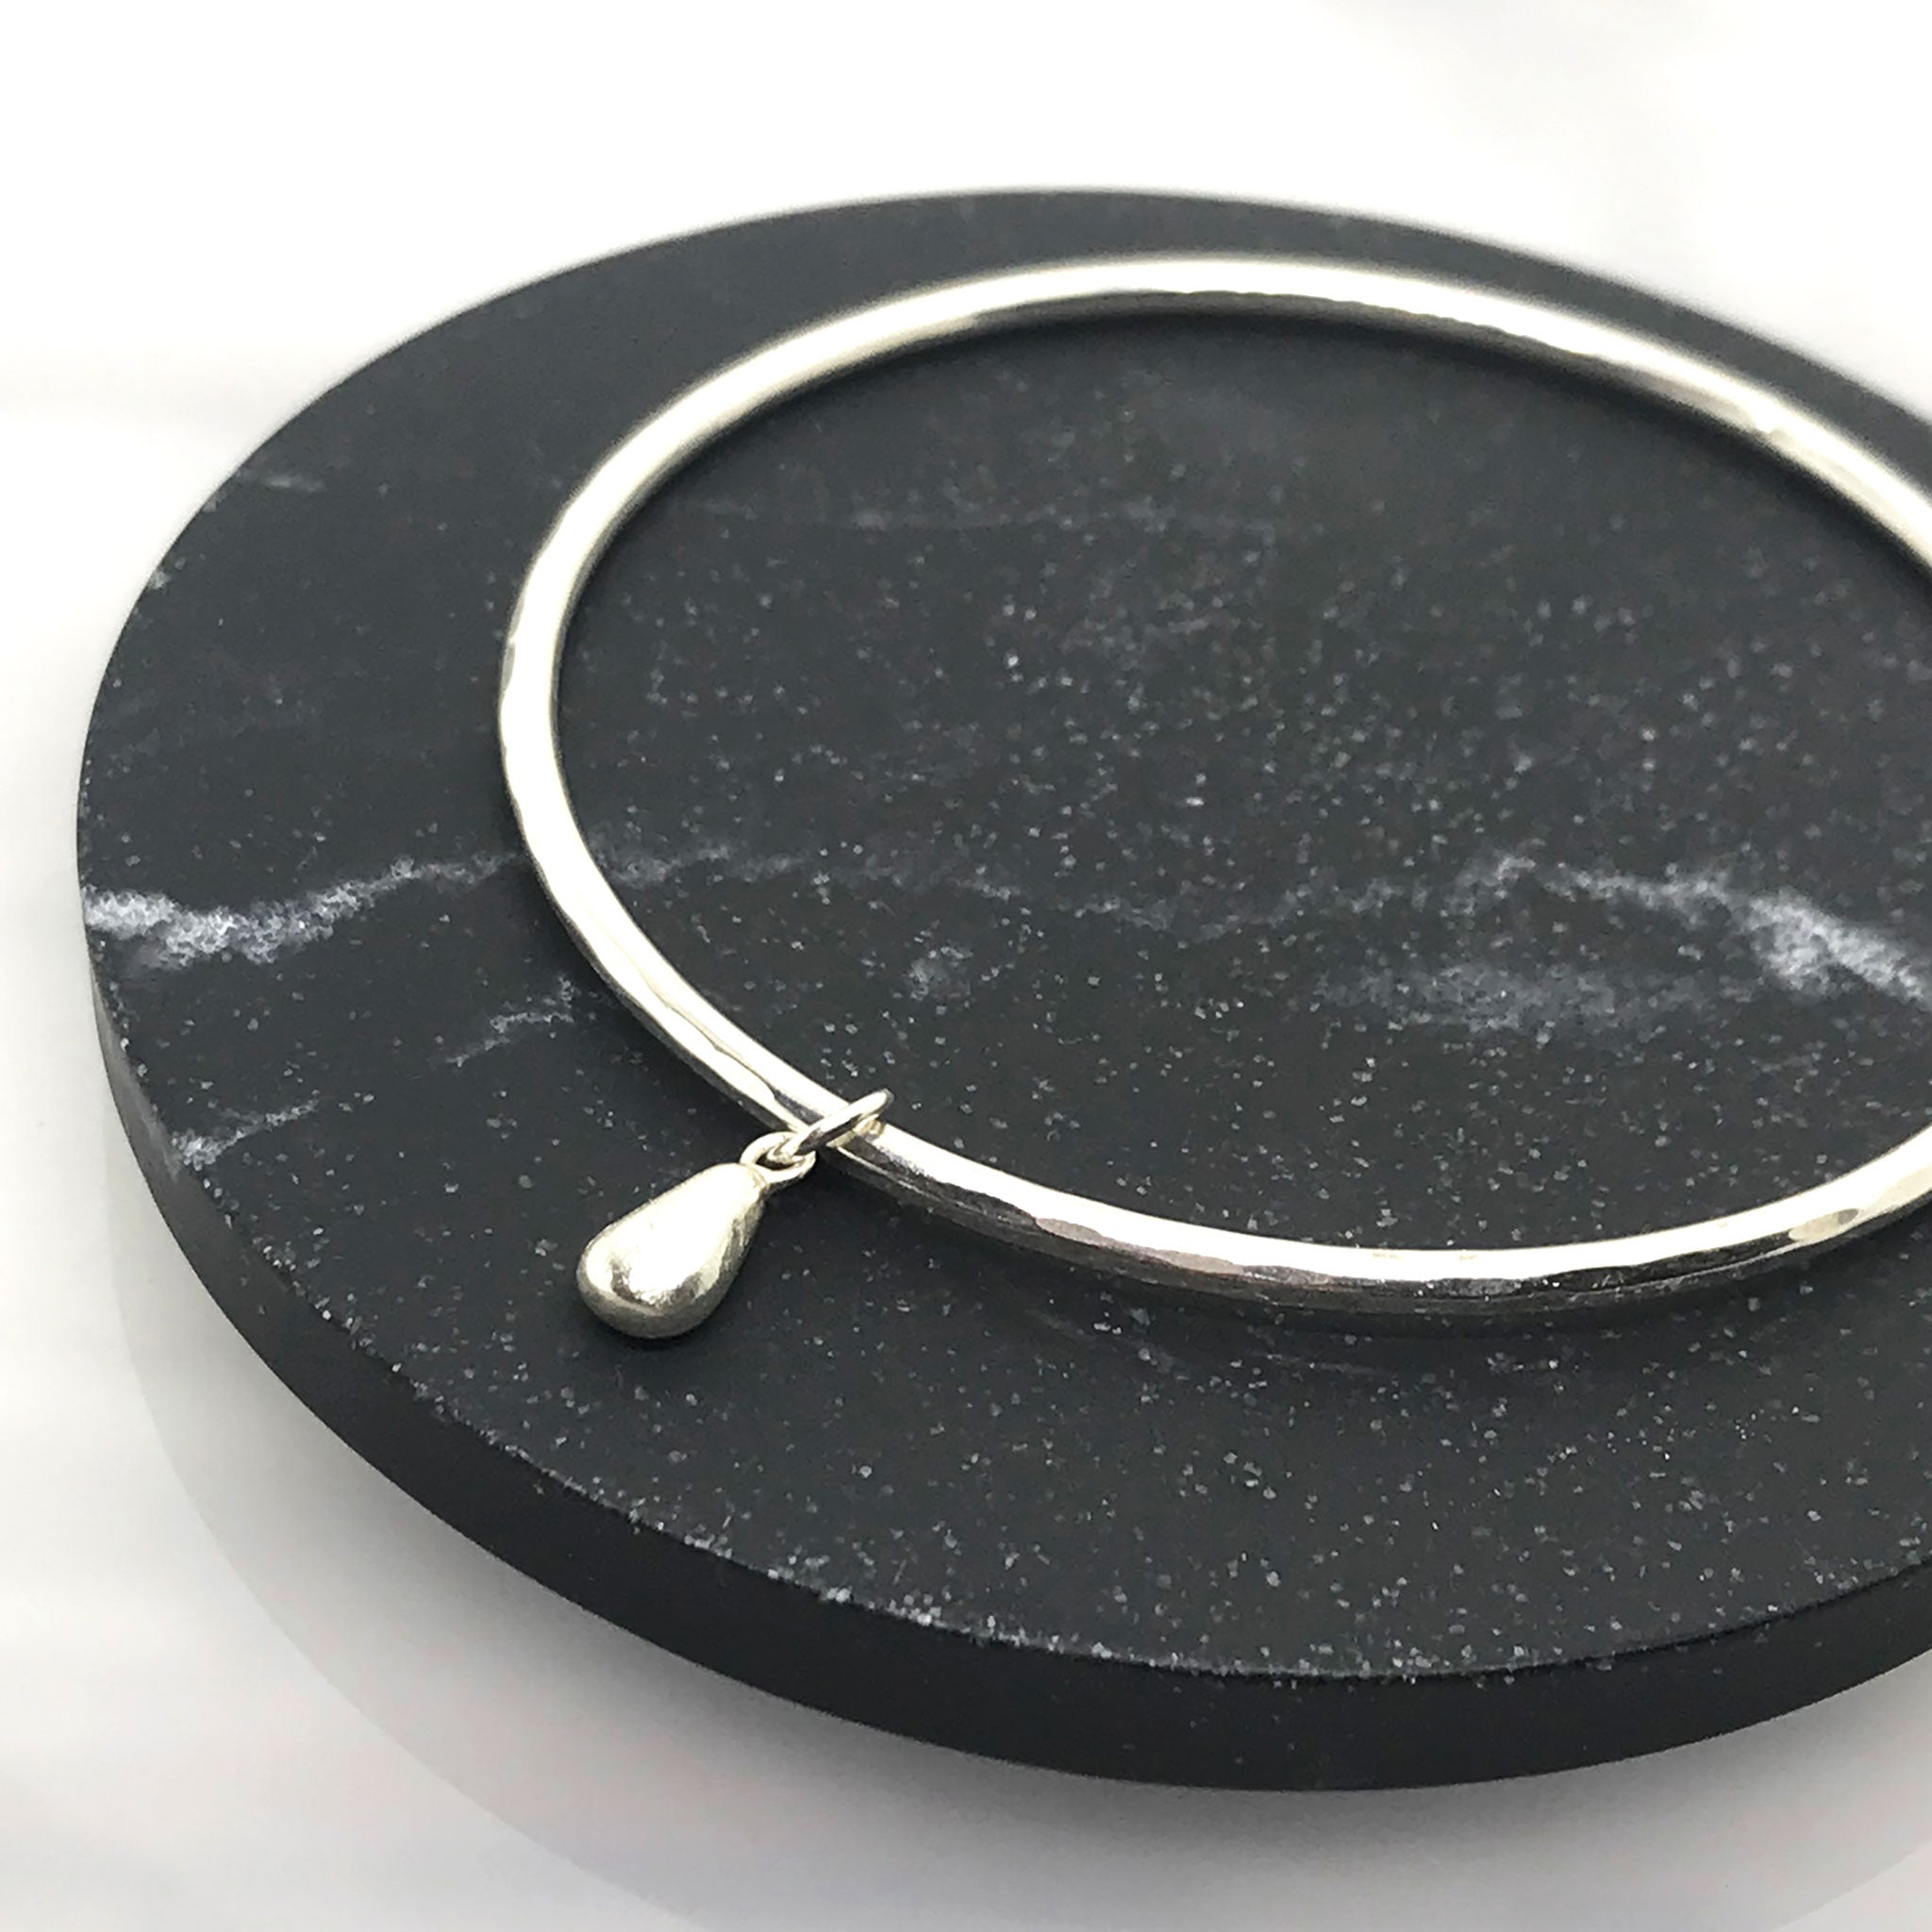 Silver Bangle with Seaglass Charm - kriket broadhurst jewellery made in Sydney